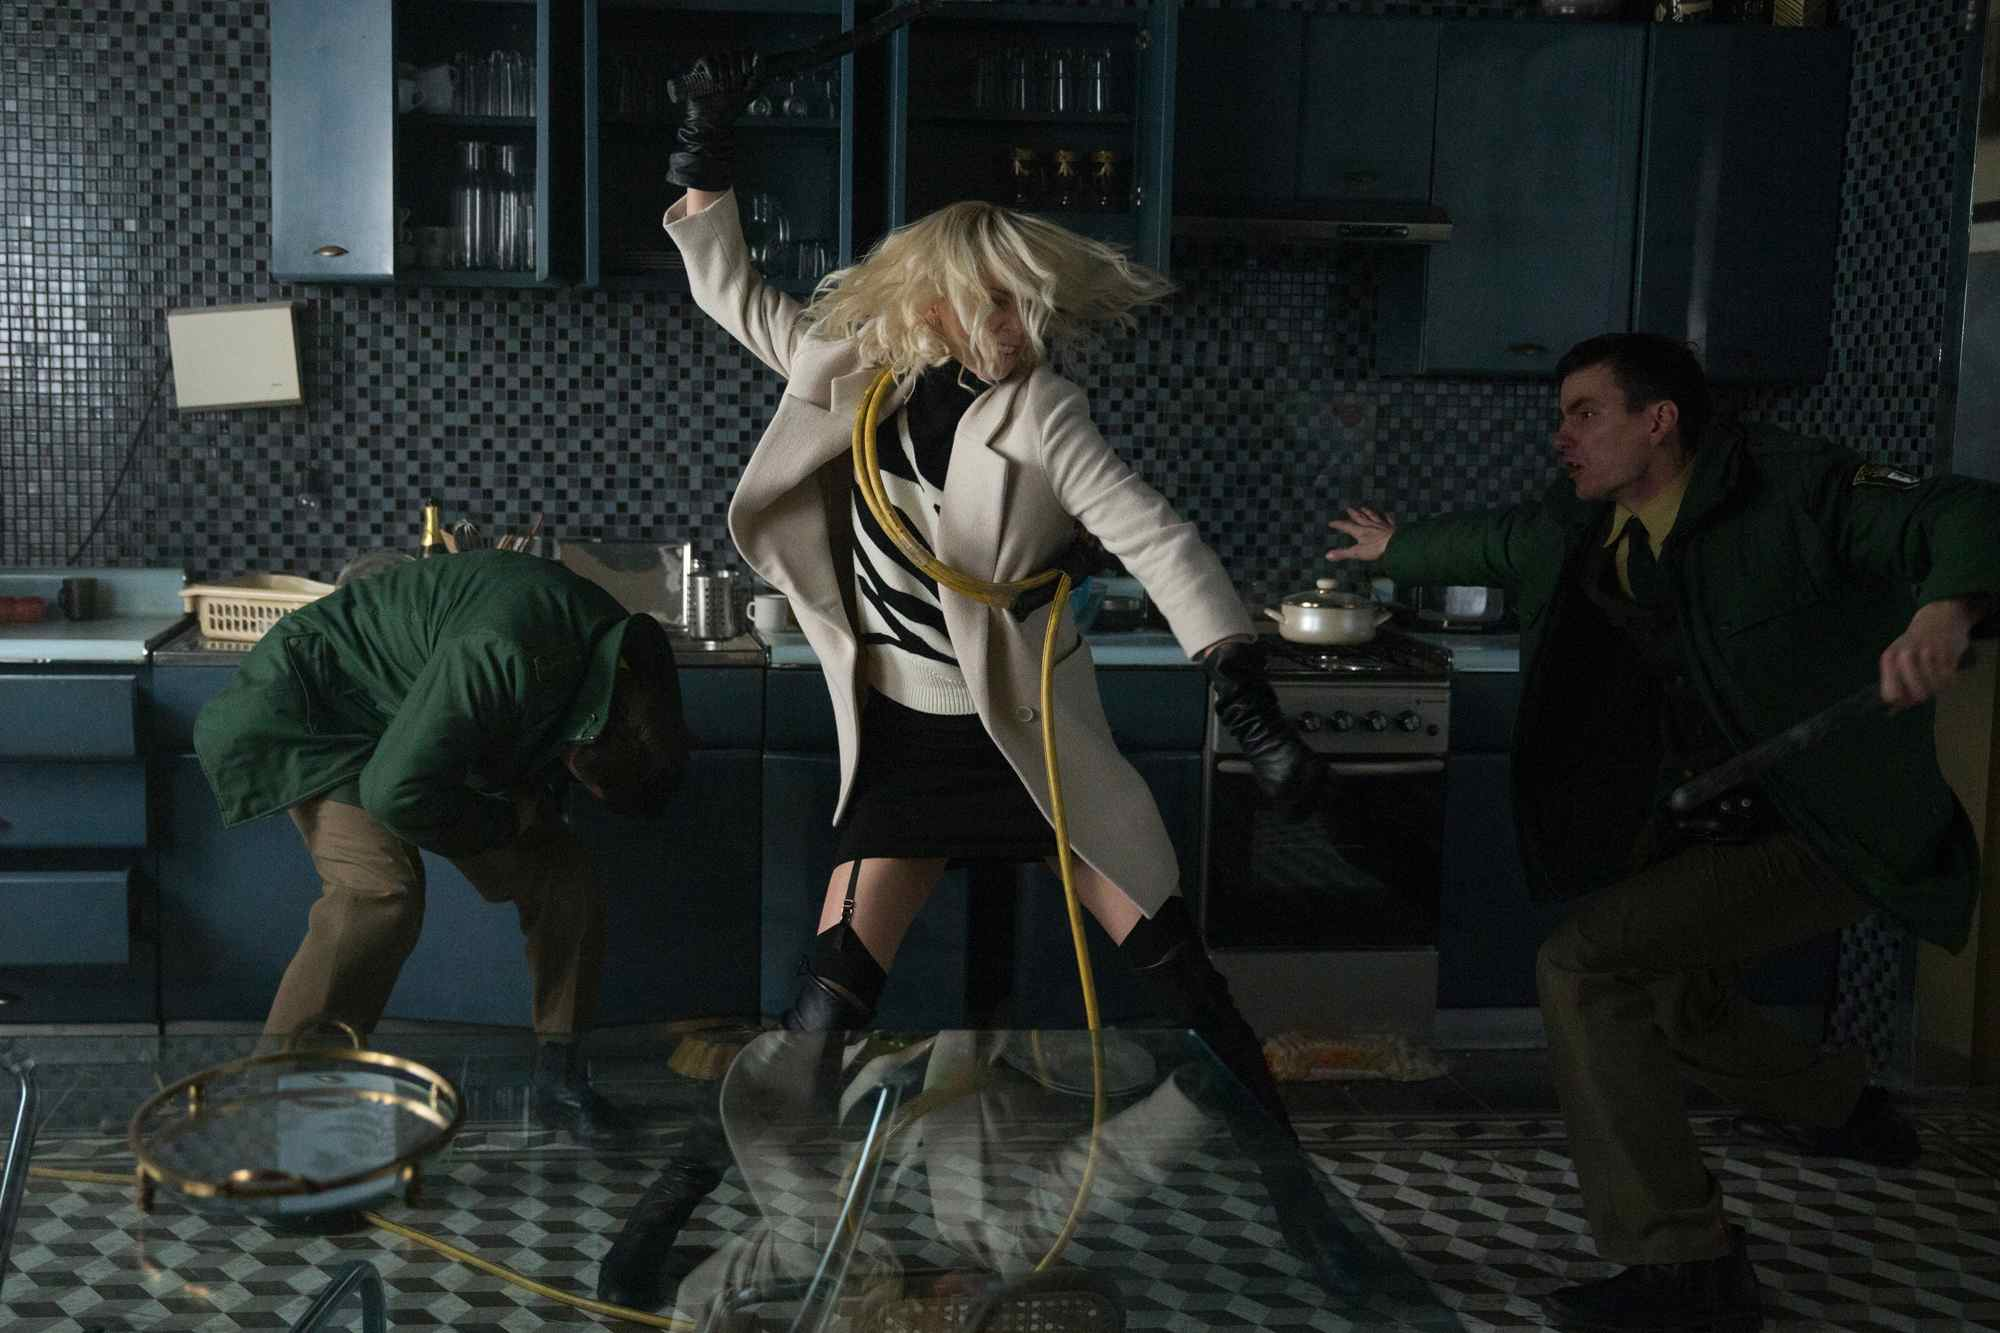 Atomic Blonde is thrilling, gorgeous nonsense. More, please!